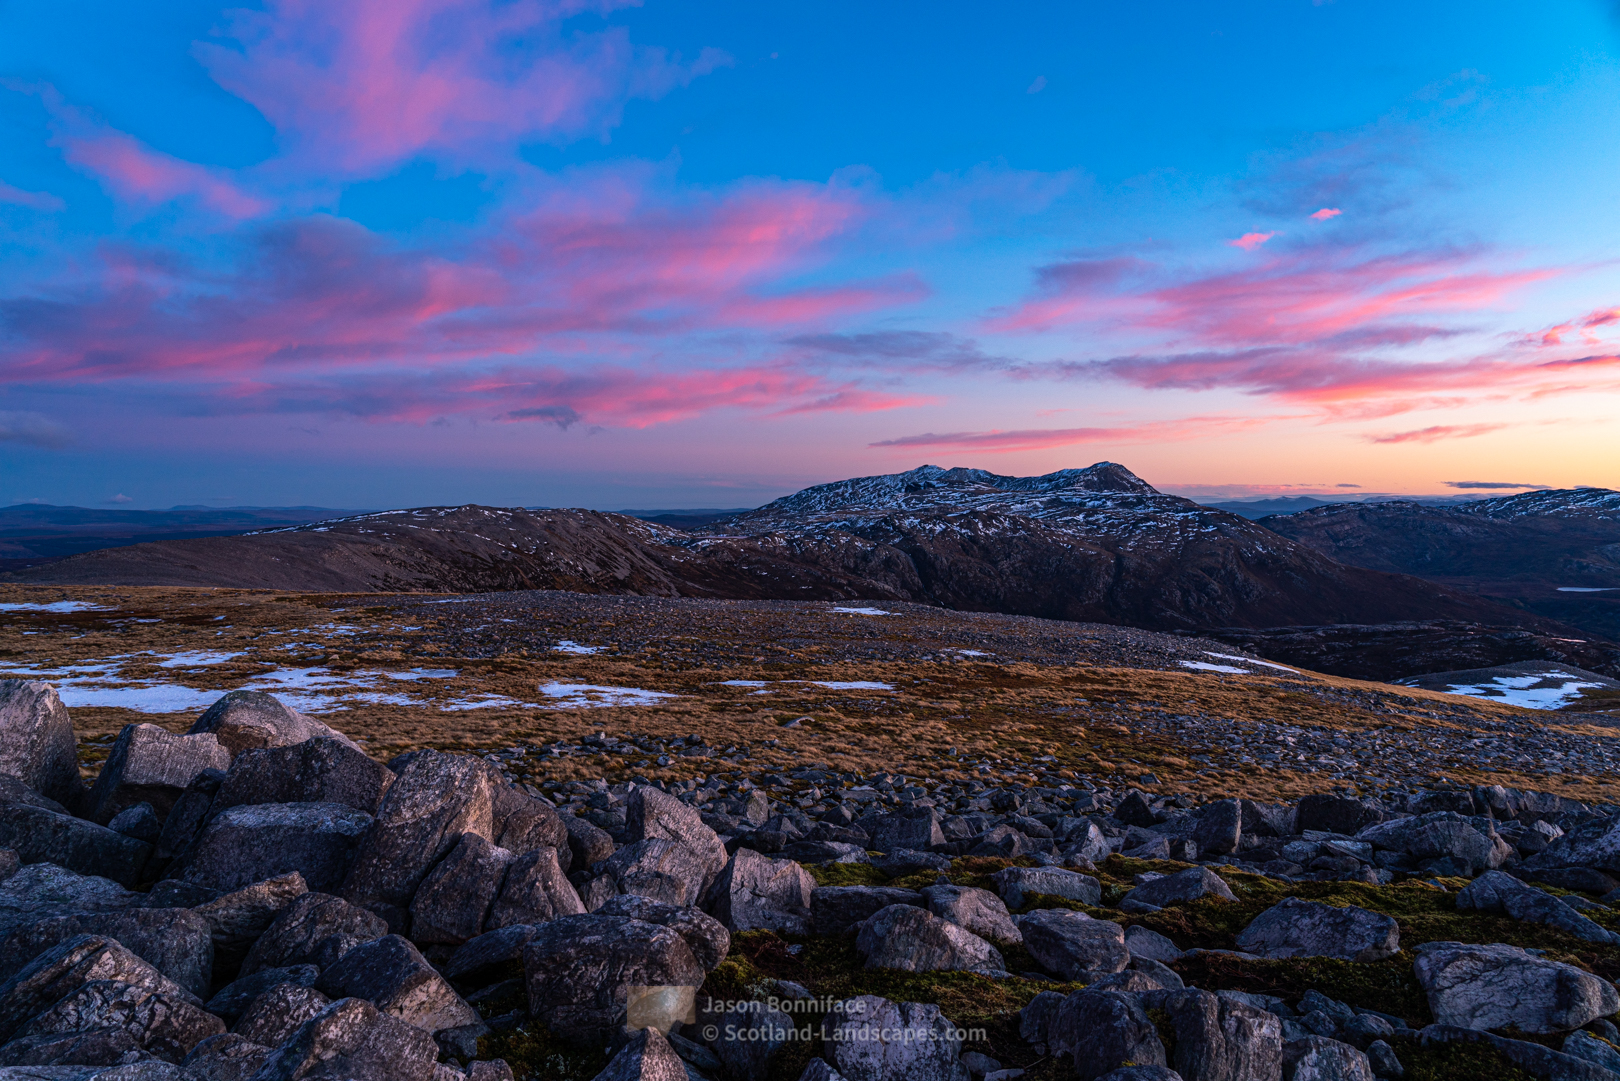 Pink clouds and the Assynt giants, Ben More Assynt and Conival